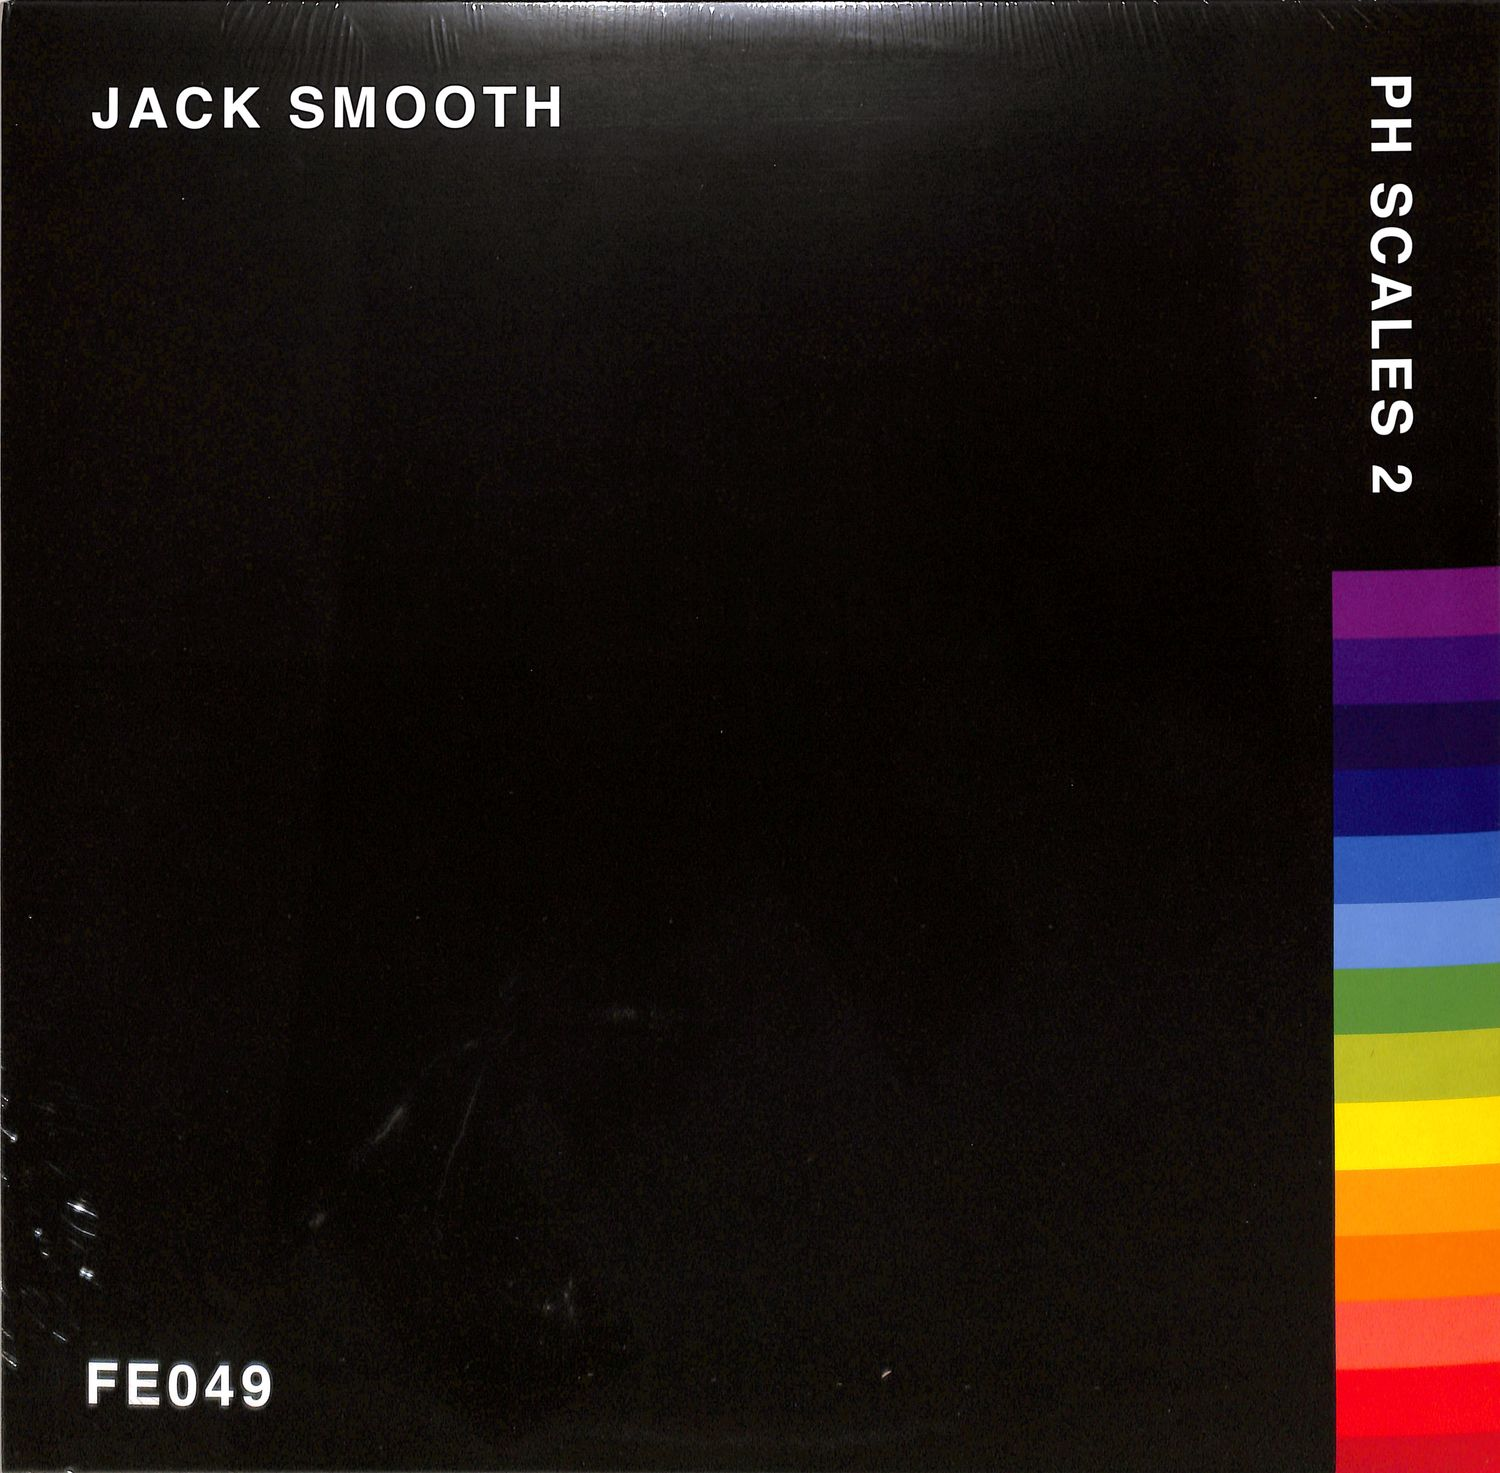 Jack Smooth - PH SCALES 2